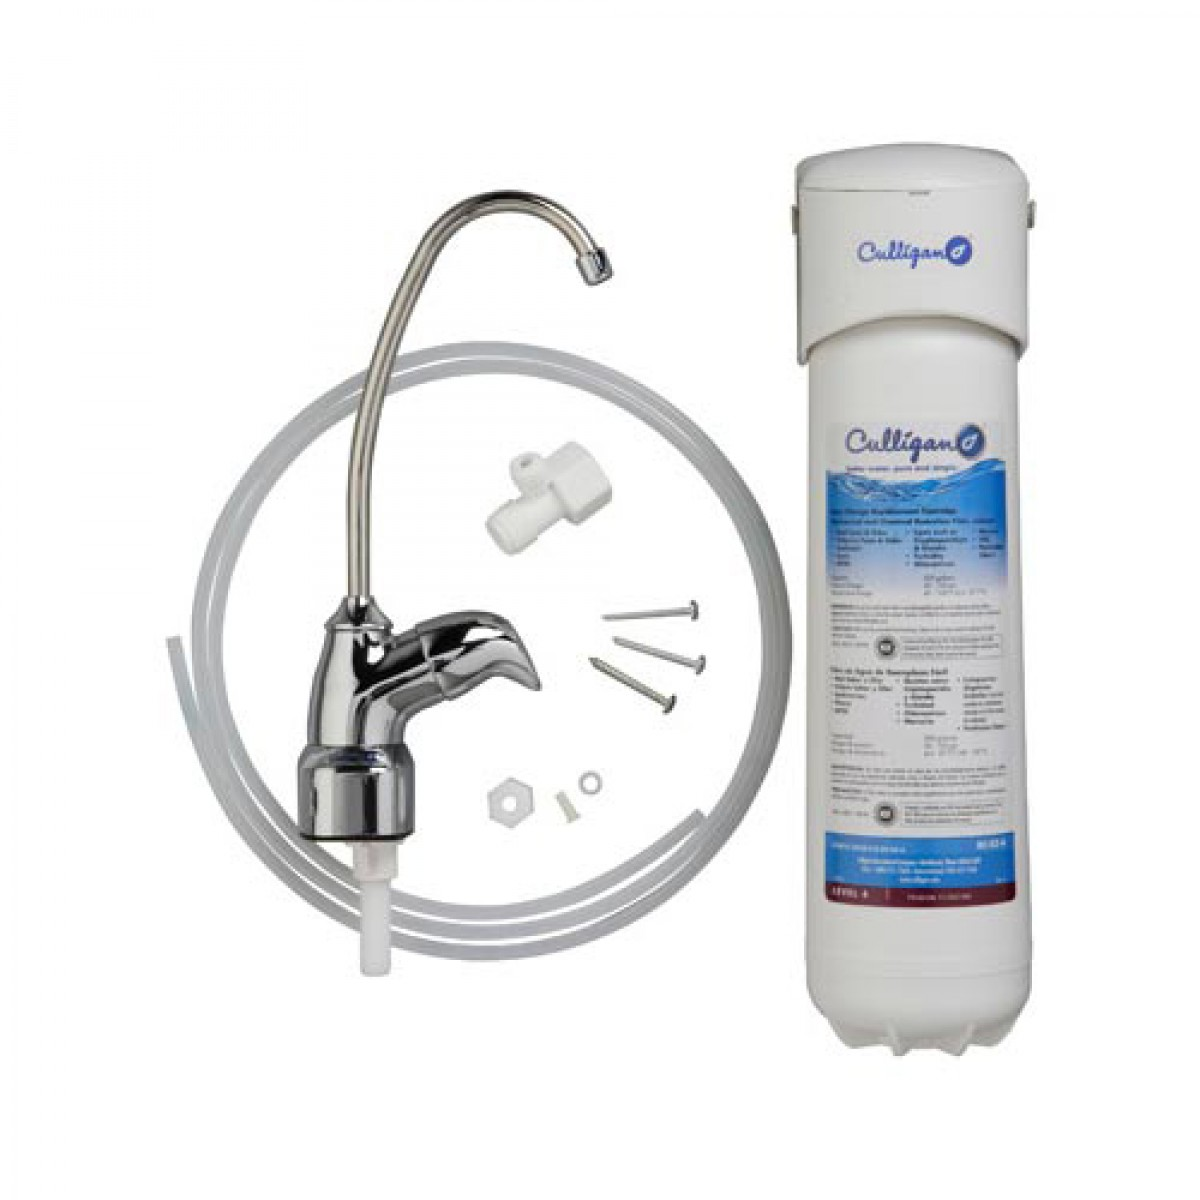 Culligan Us Ez 4 Under Sink Drinking Water Filter System